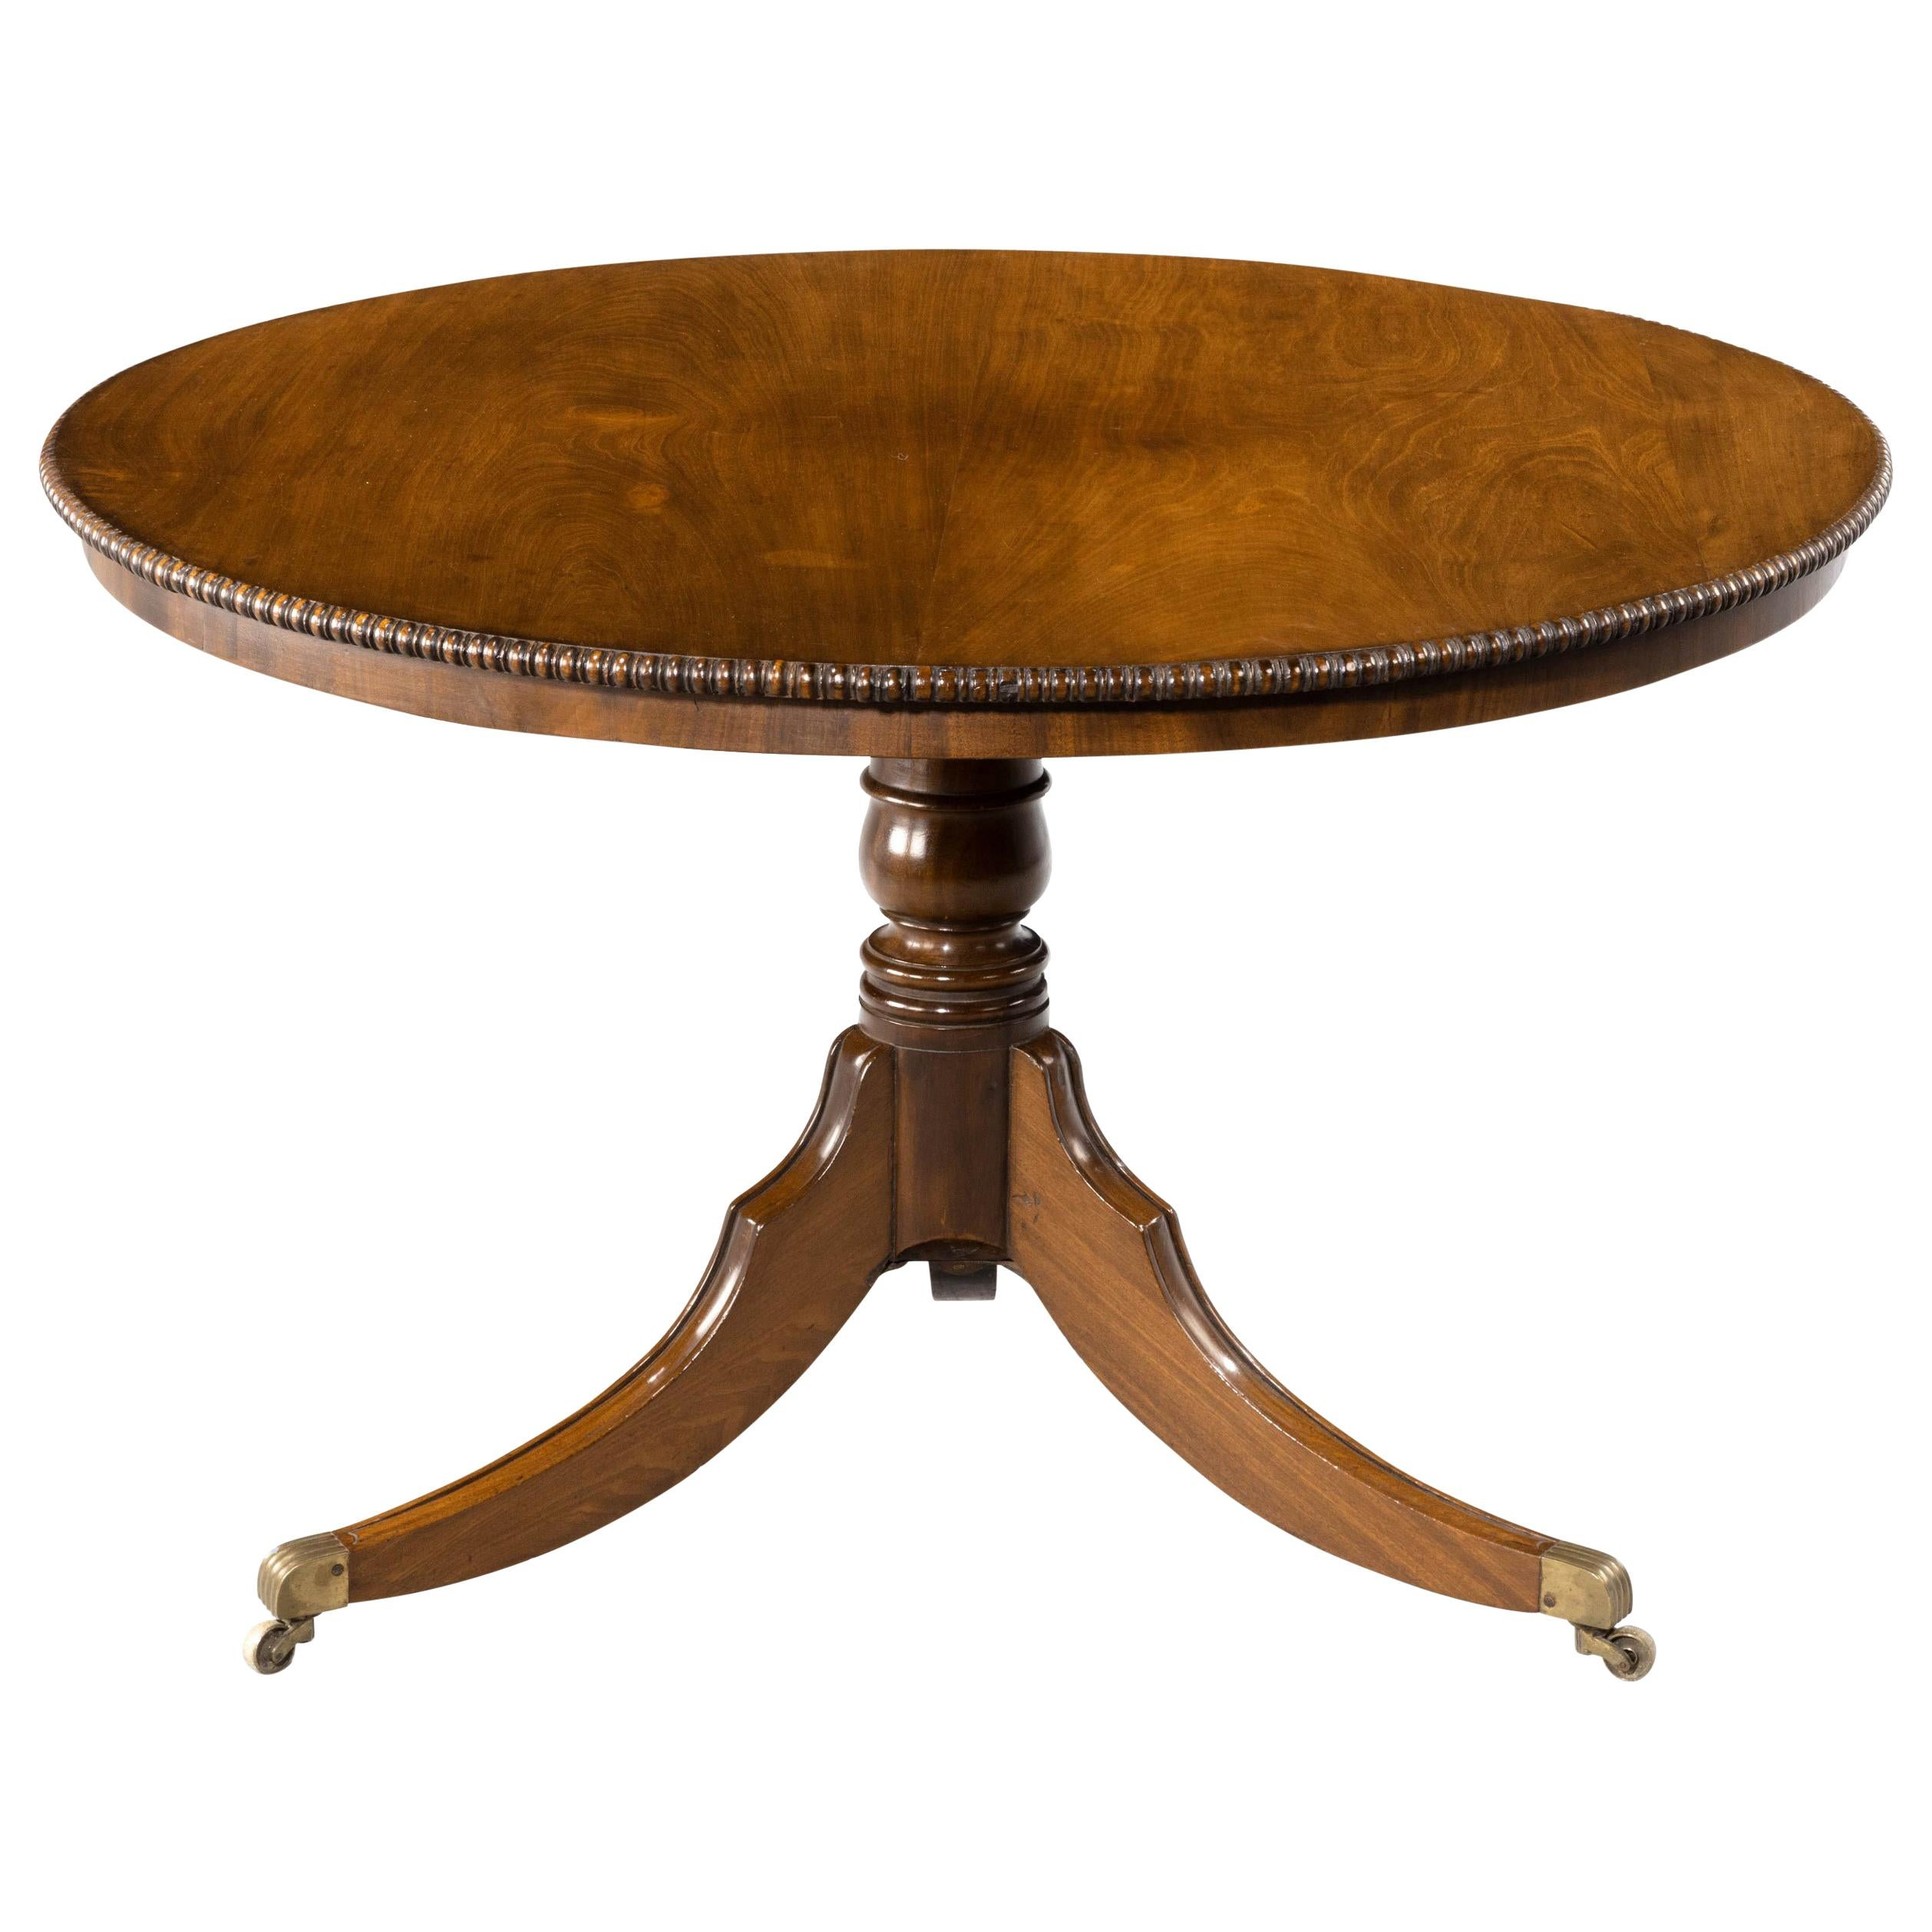 Most Attractive Regency Period Tilt-Top Dining Table